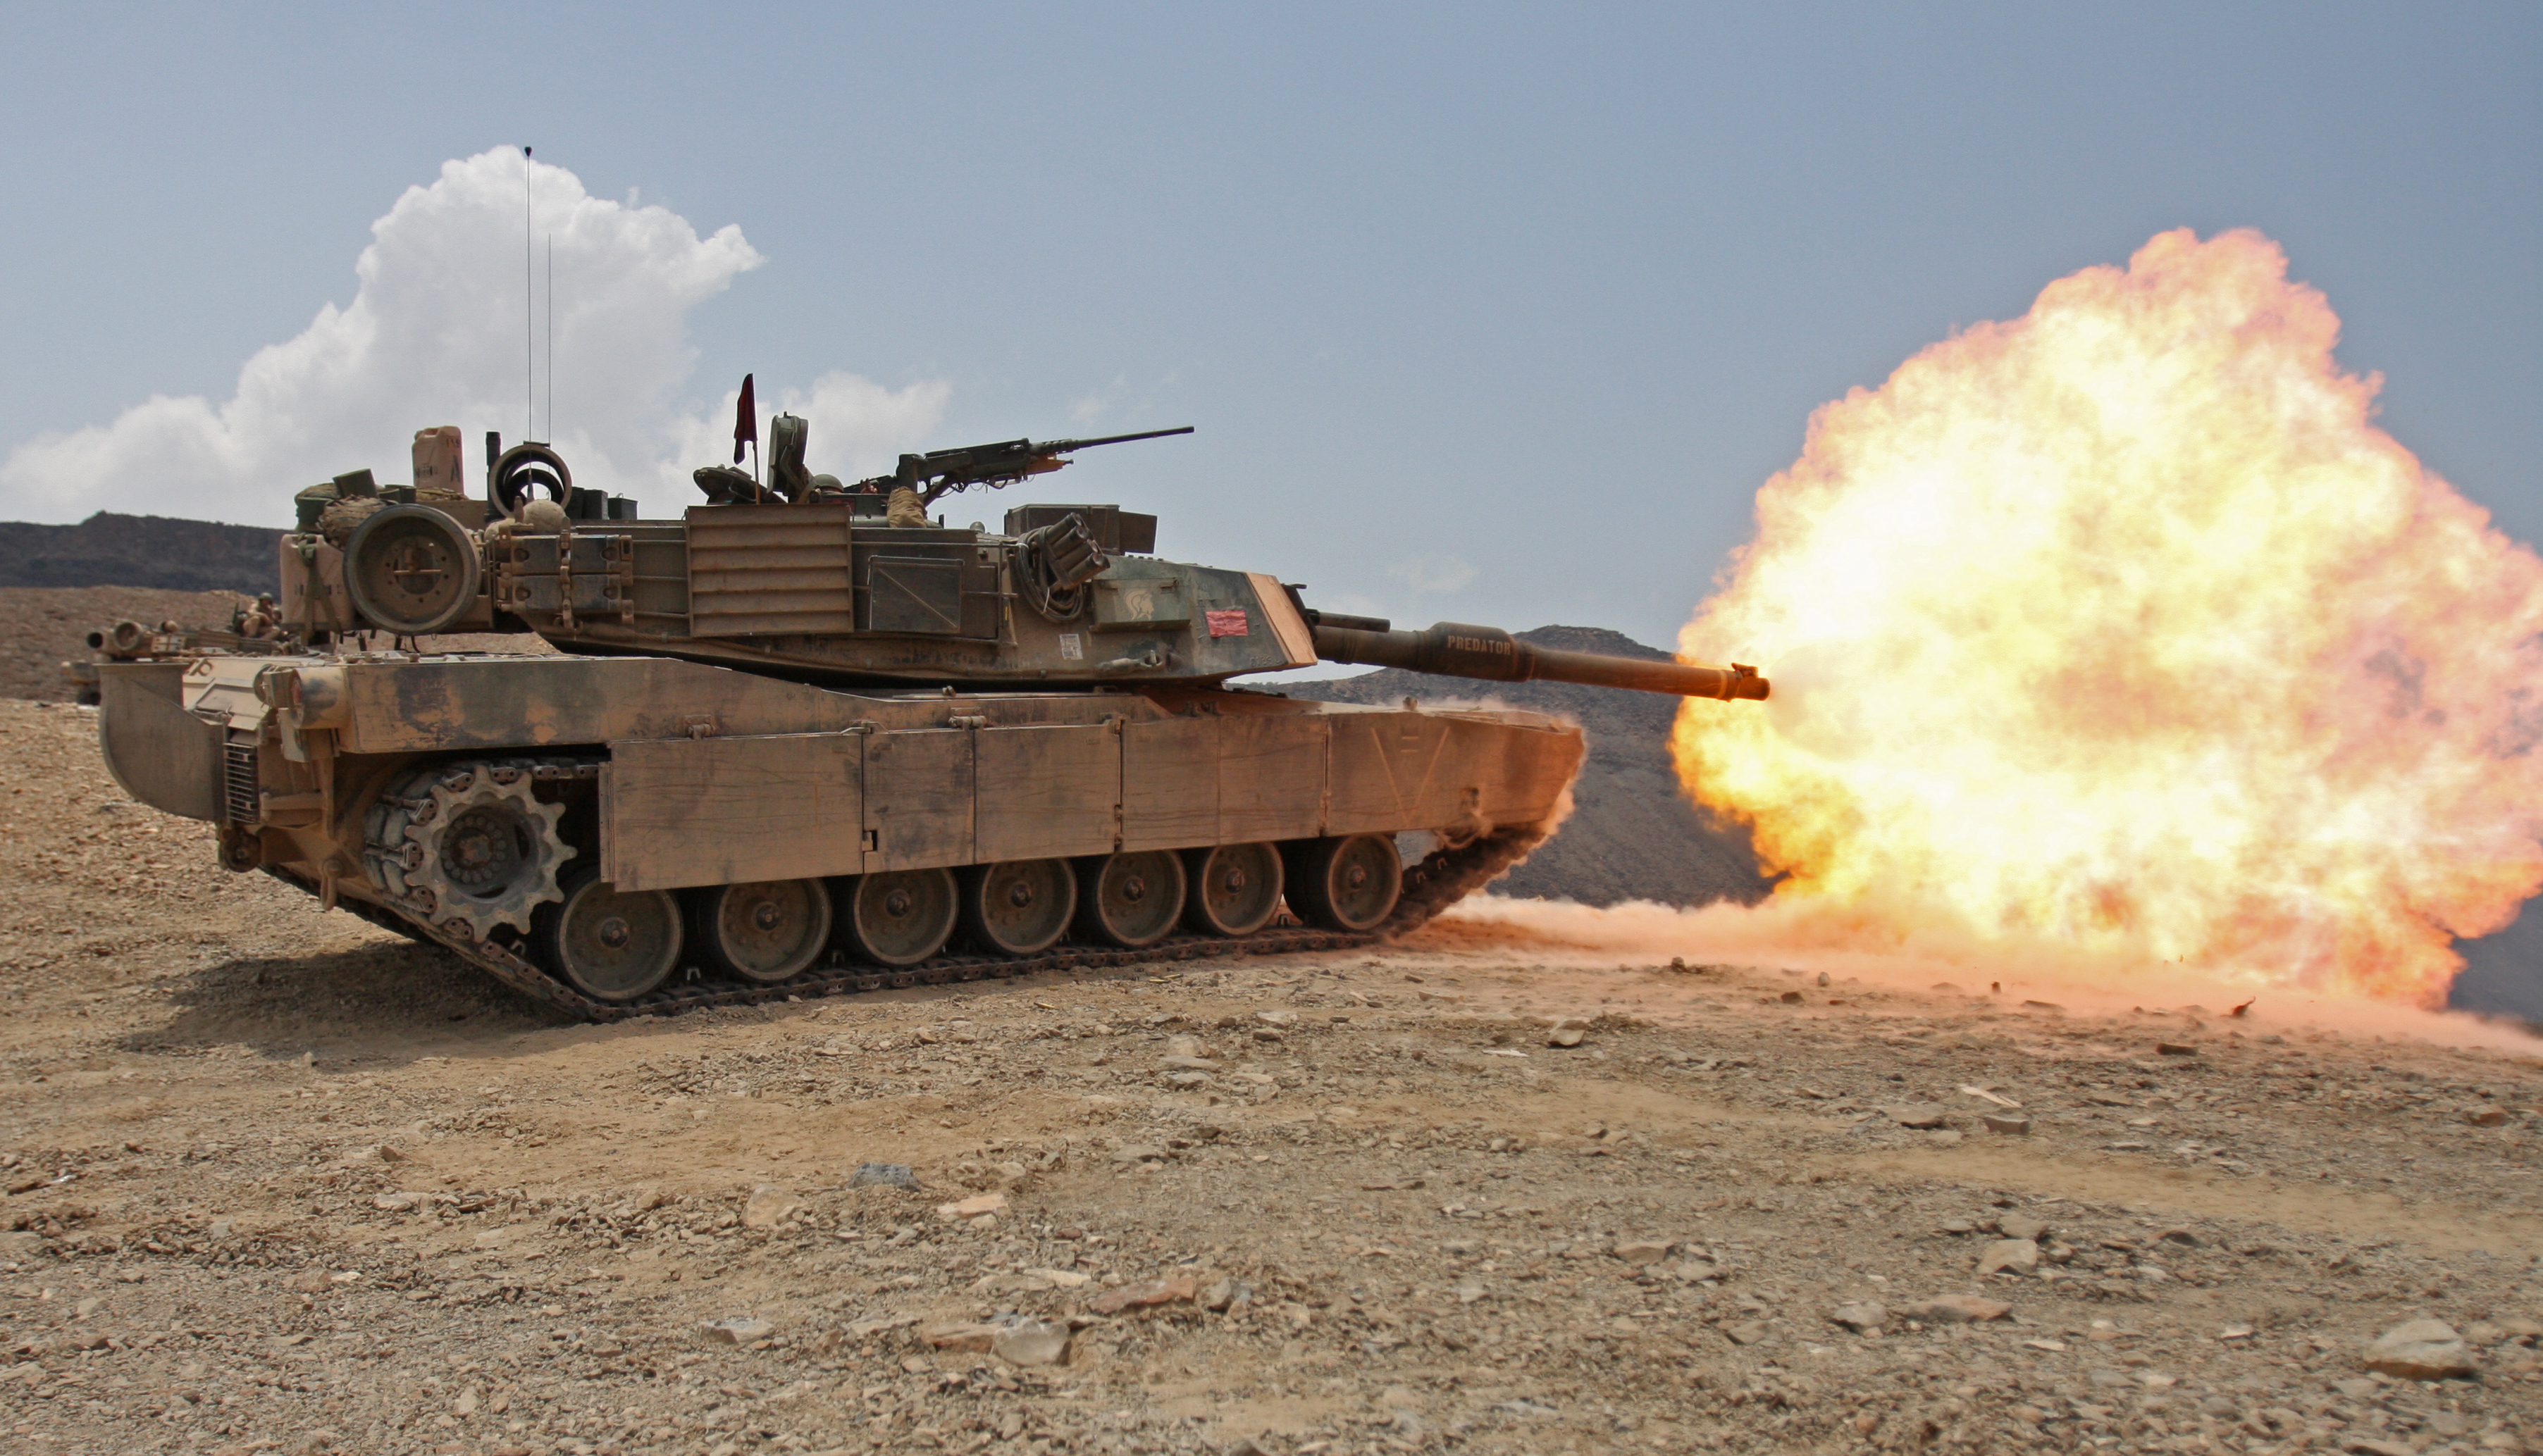 Description firing m1a1 tank in djibouti